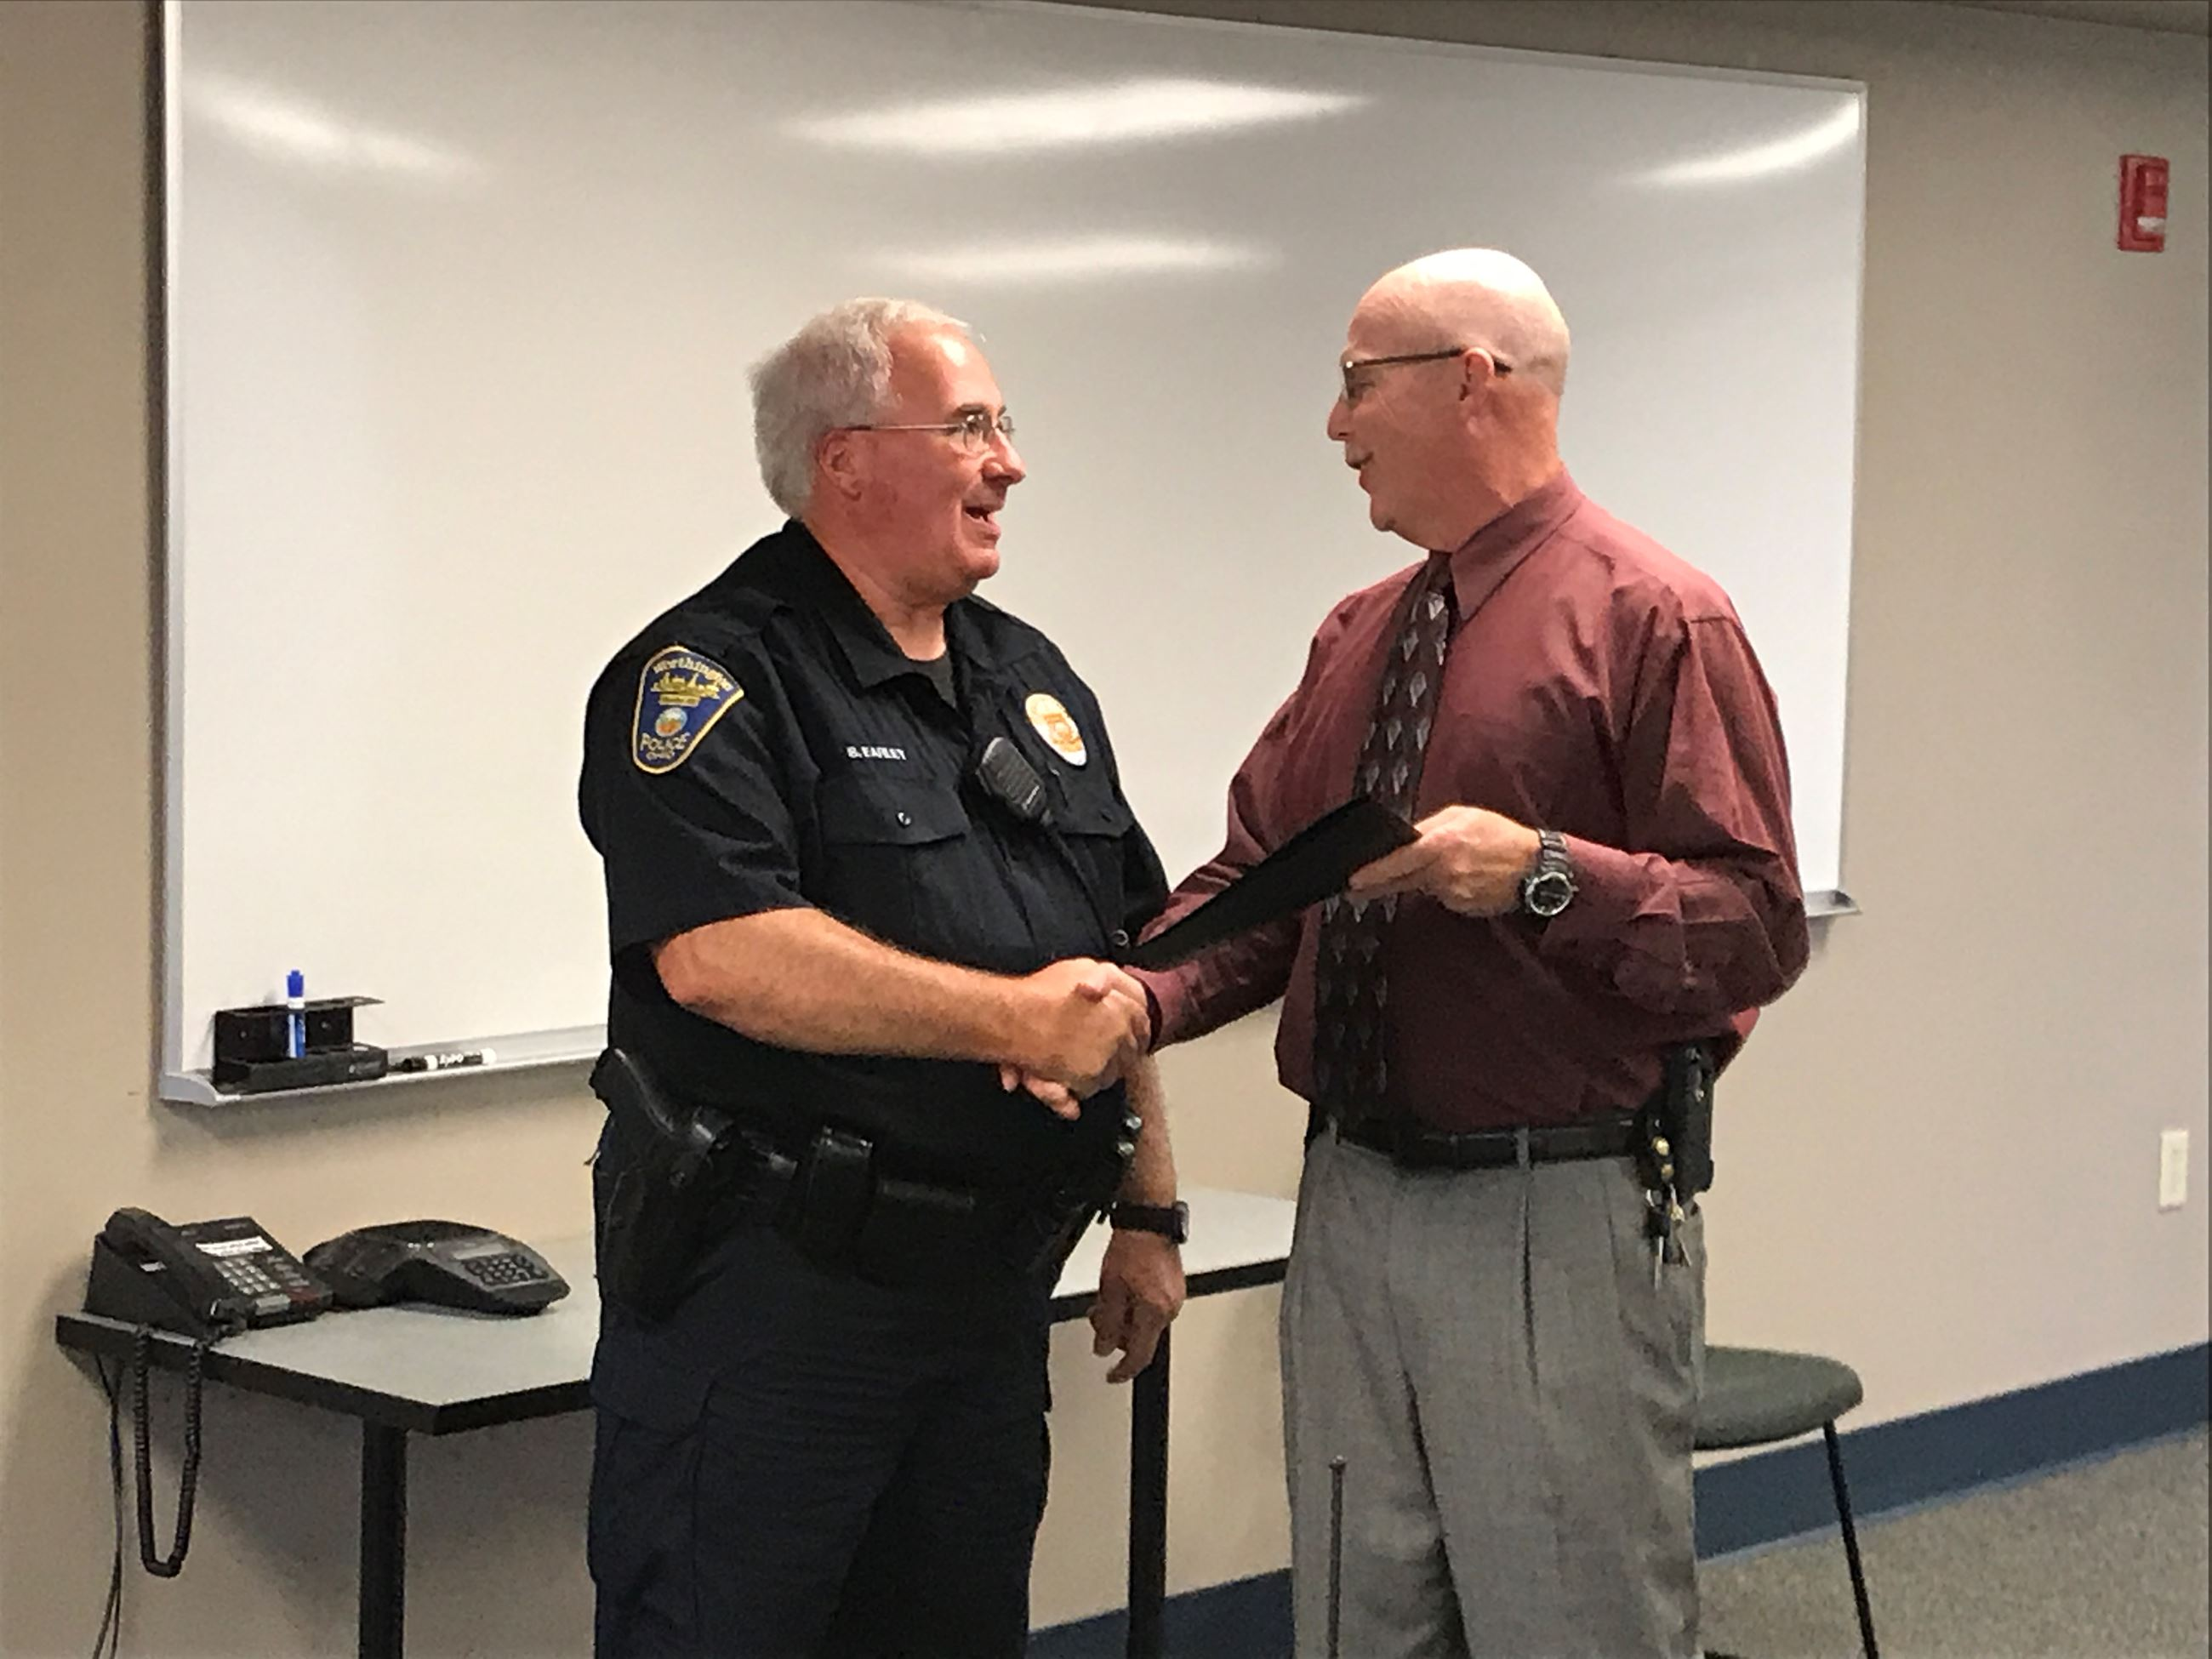 Ofc Earley gets an award from Chief Strait